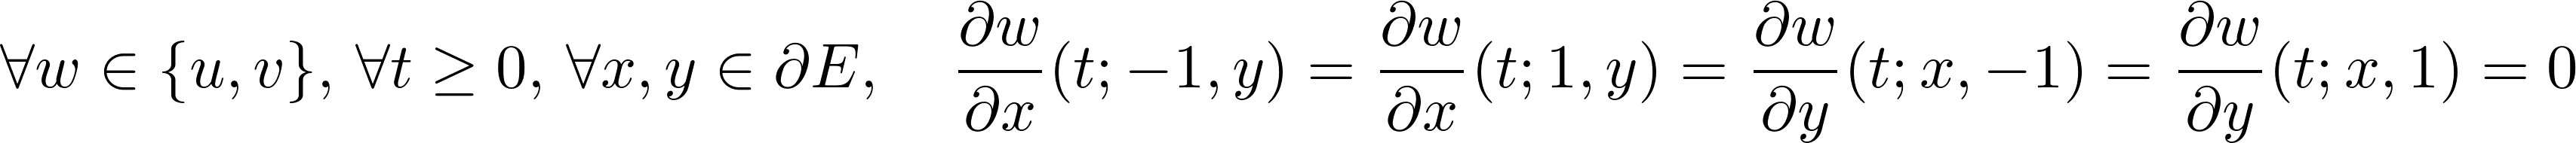 Original LaTeX equation